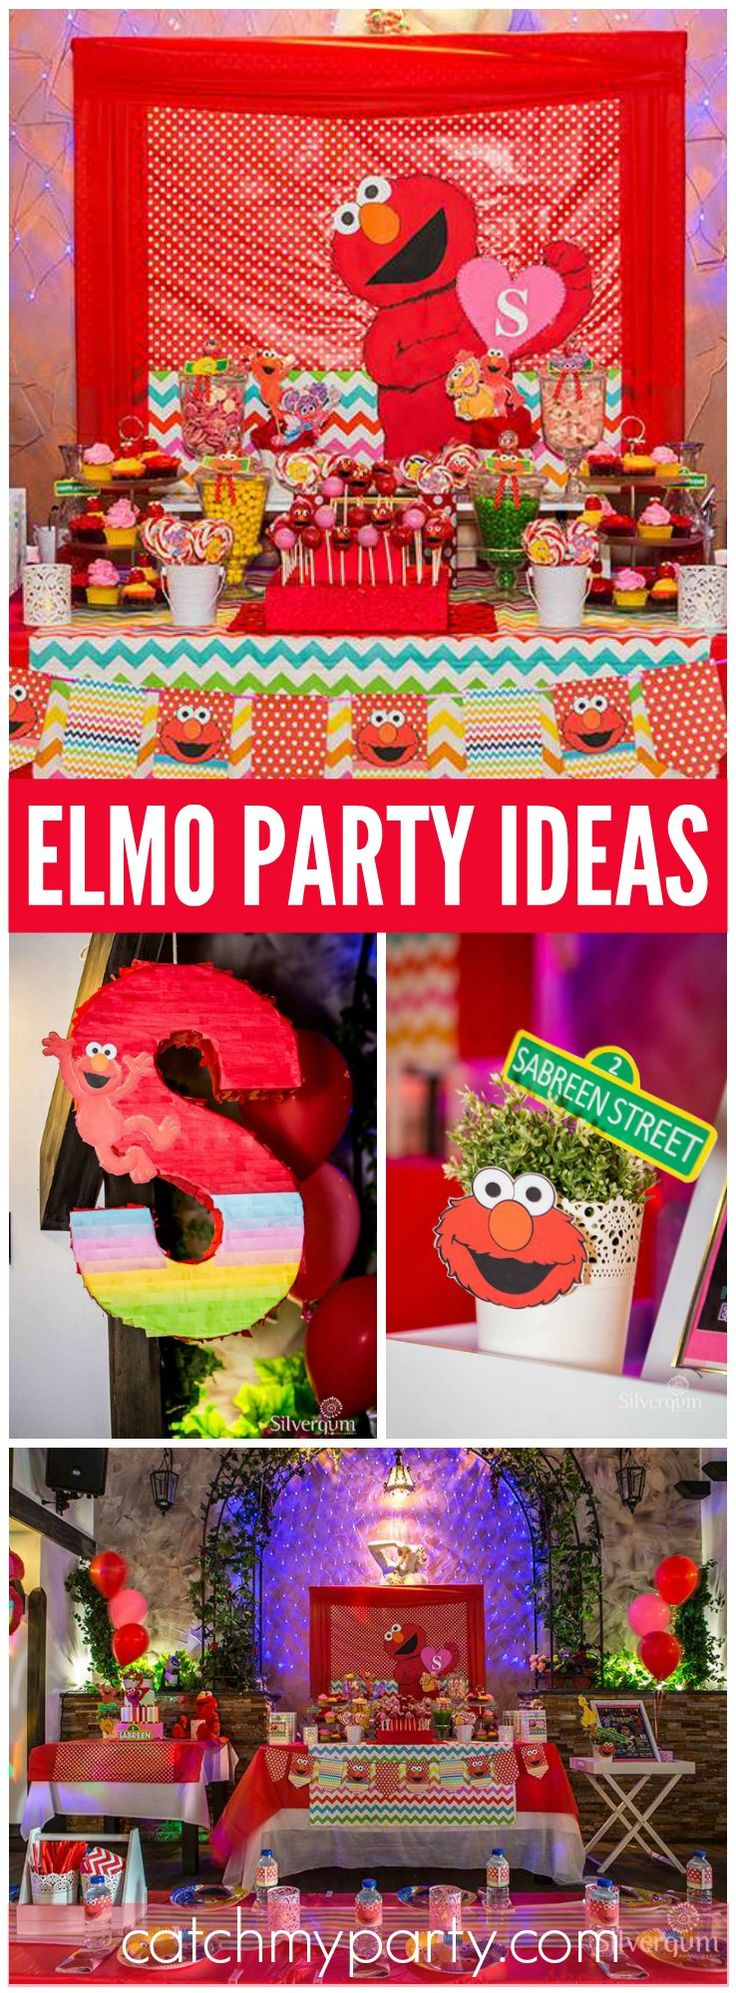 Elmo 1st birthday party ideas birthday party sesamestreet - Elmo Birthday Sabreen S Elmo Themed 2nd Birthday Party